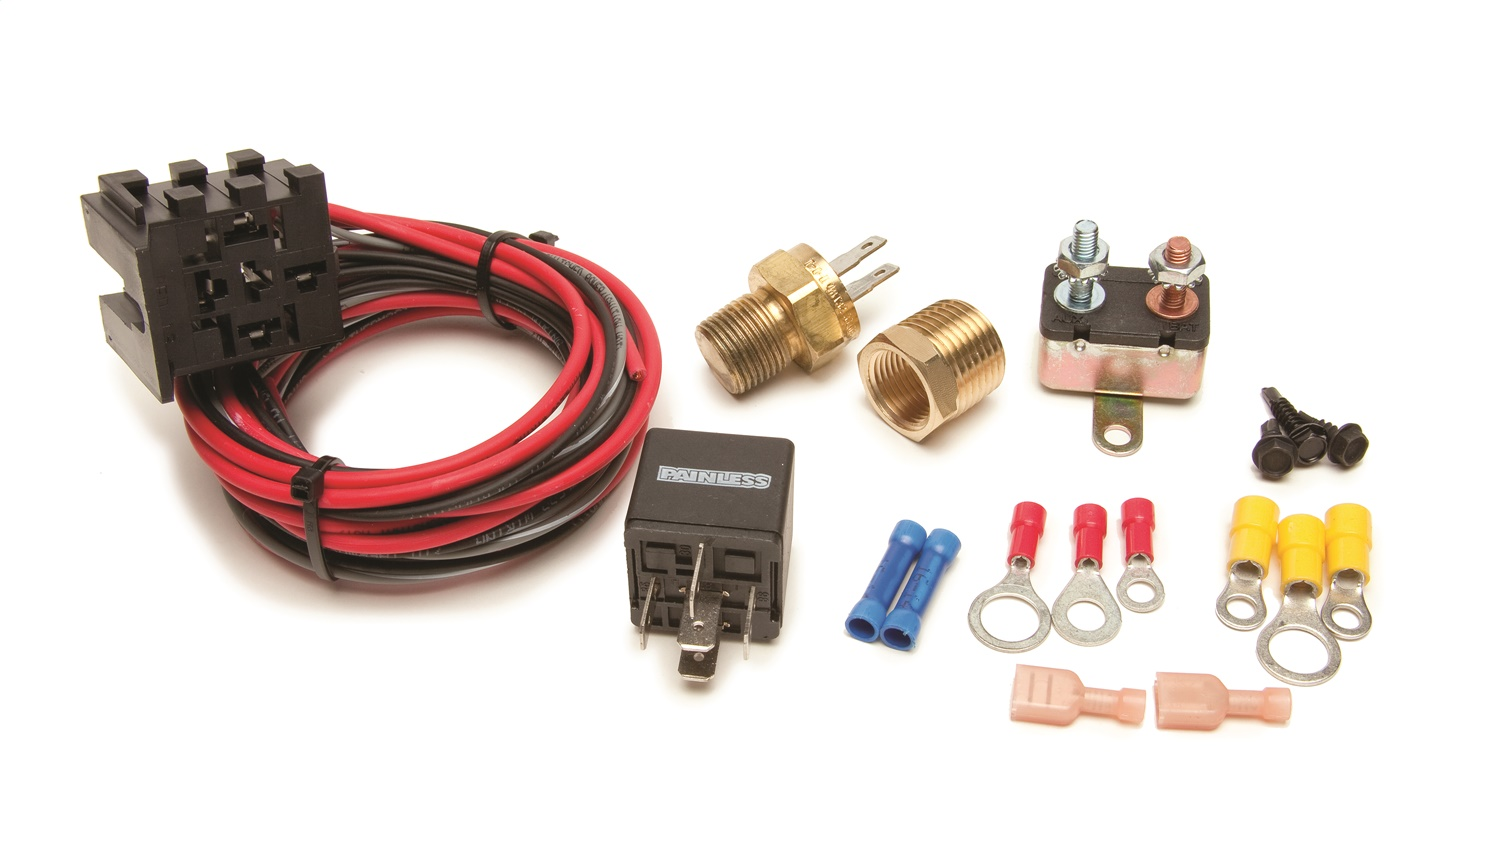 Painless Wiring Harness F350 Kit66 Diagram Will Be A Thing Kits Ebay Wire Center U2022 Rh 207 246 123 107 Chevy Truck